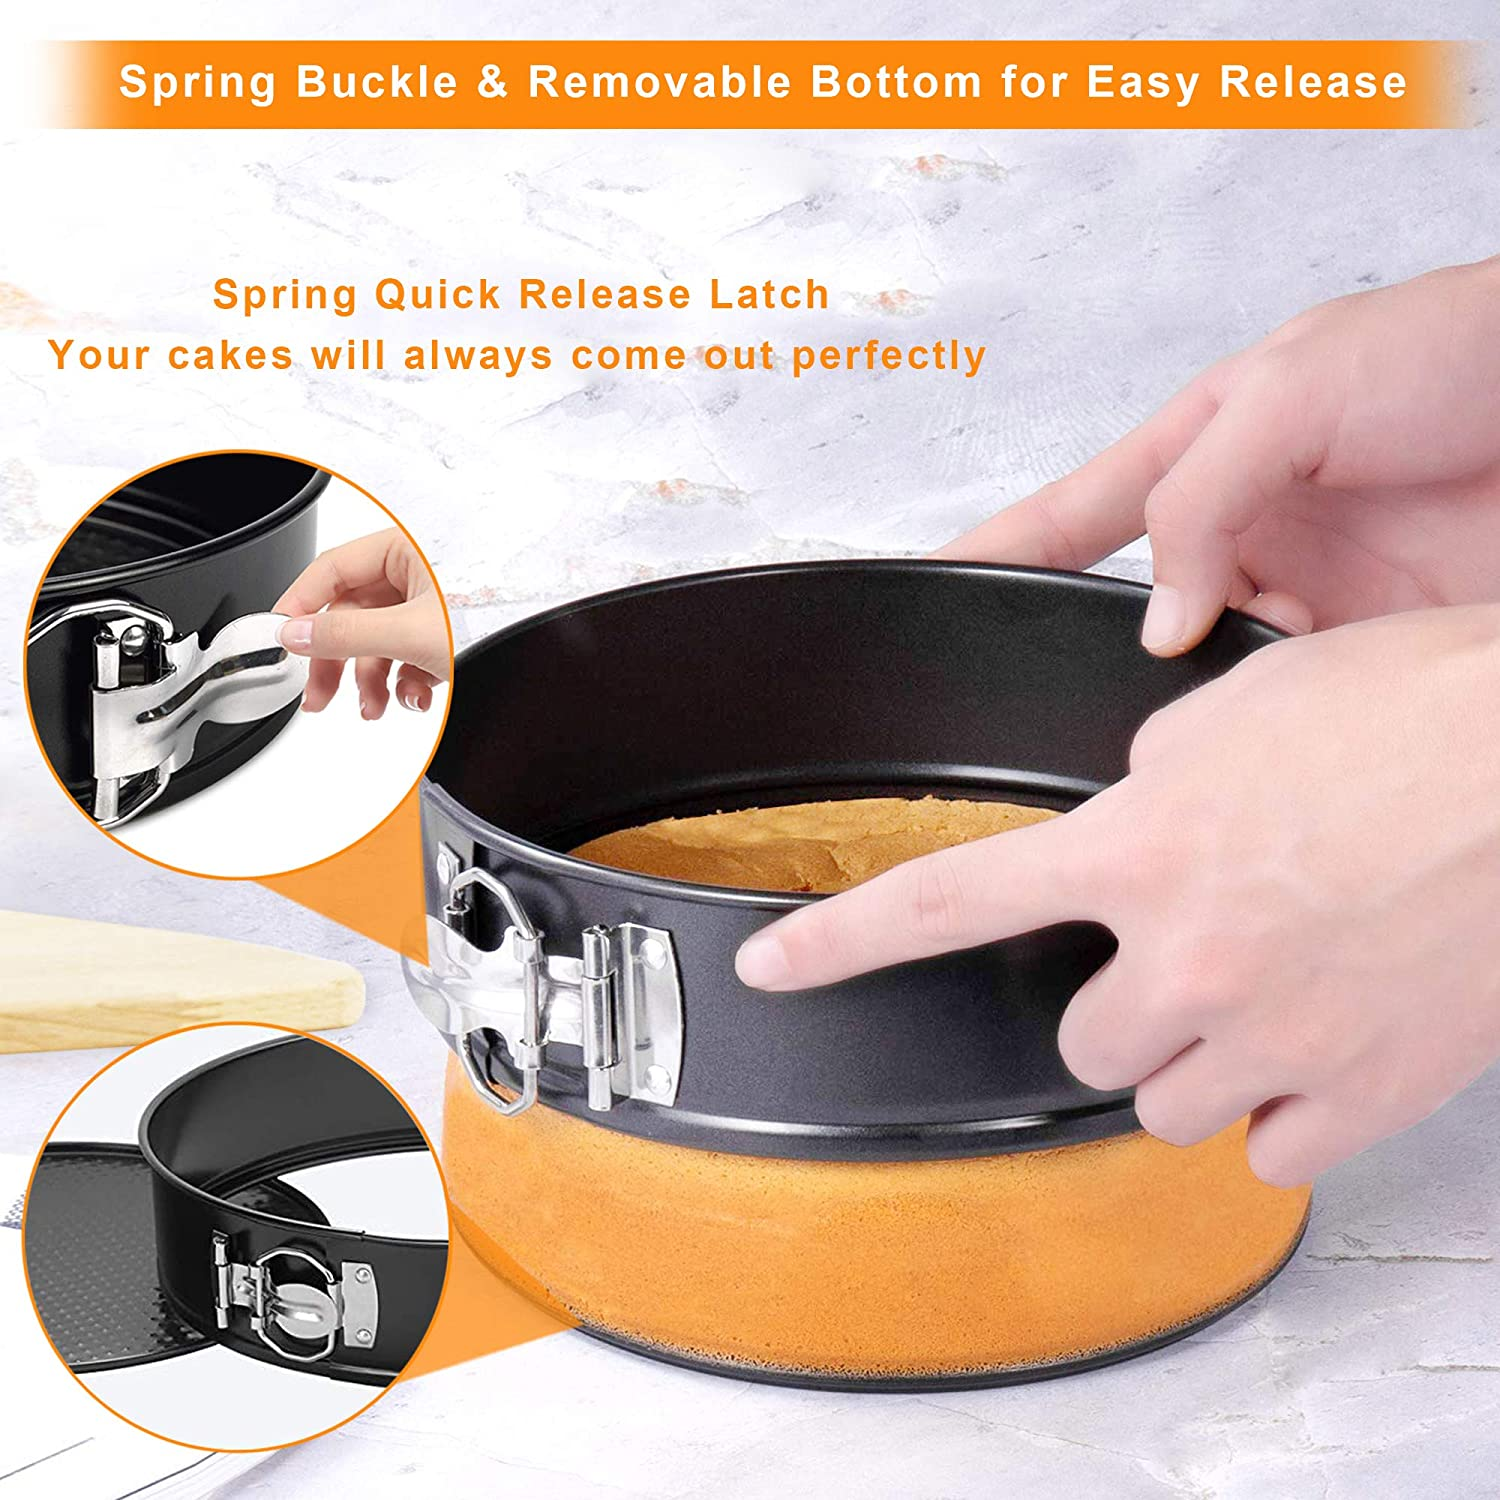 Leakproof Round Cake Pan 4 7 9 10 inch Set of 4 Lets Baking Nonstick Cheesecake Pan 4+7+9+10 inch Springform Pan Set Heavy Carbon Steel Detachable Bakeware For Instant Port 6QT or 8QT by HYTK